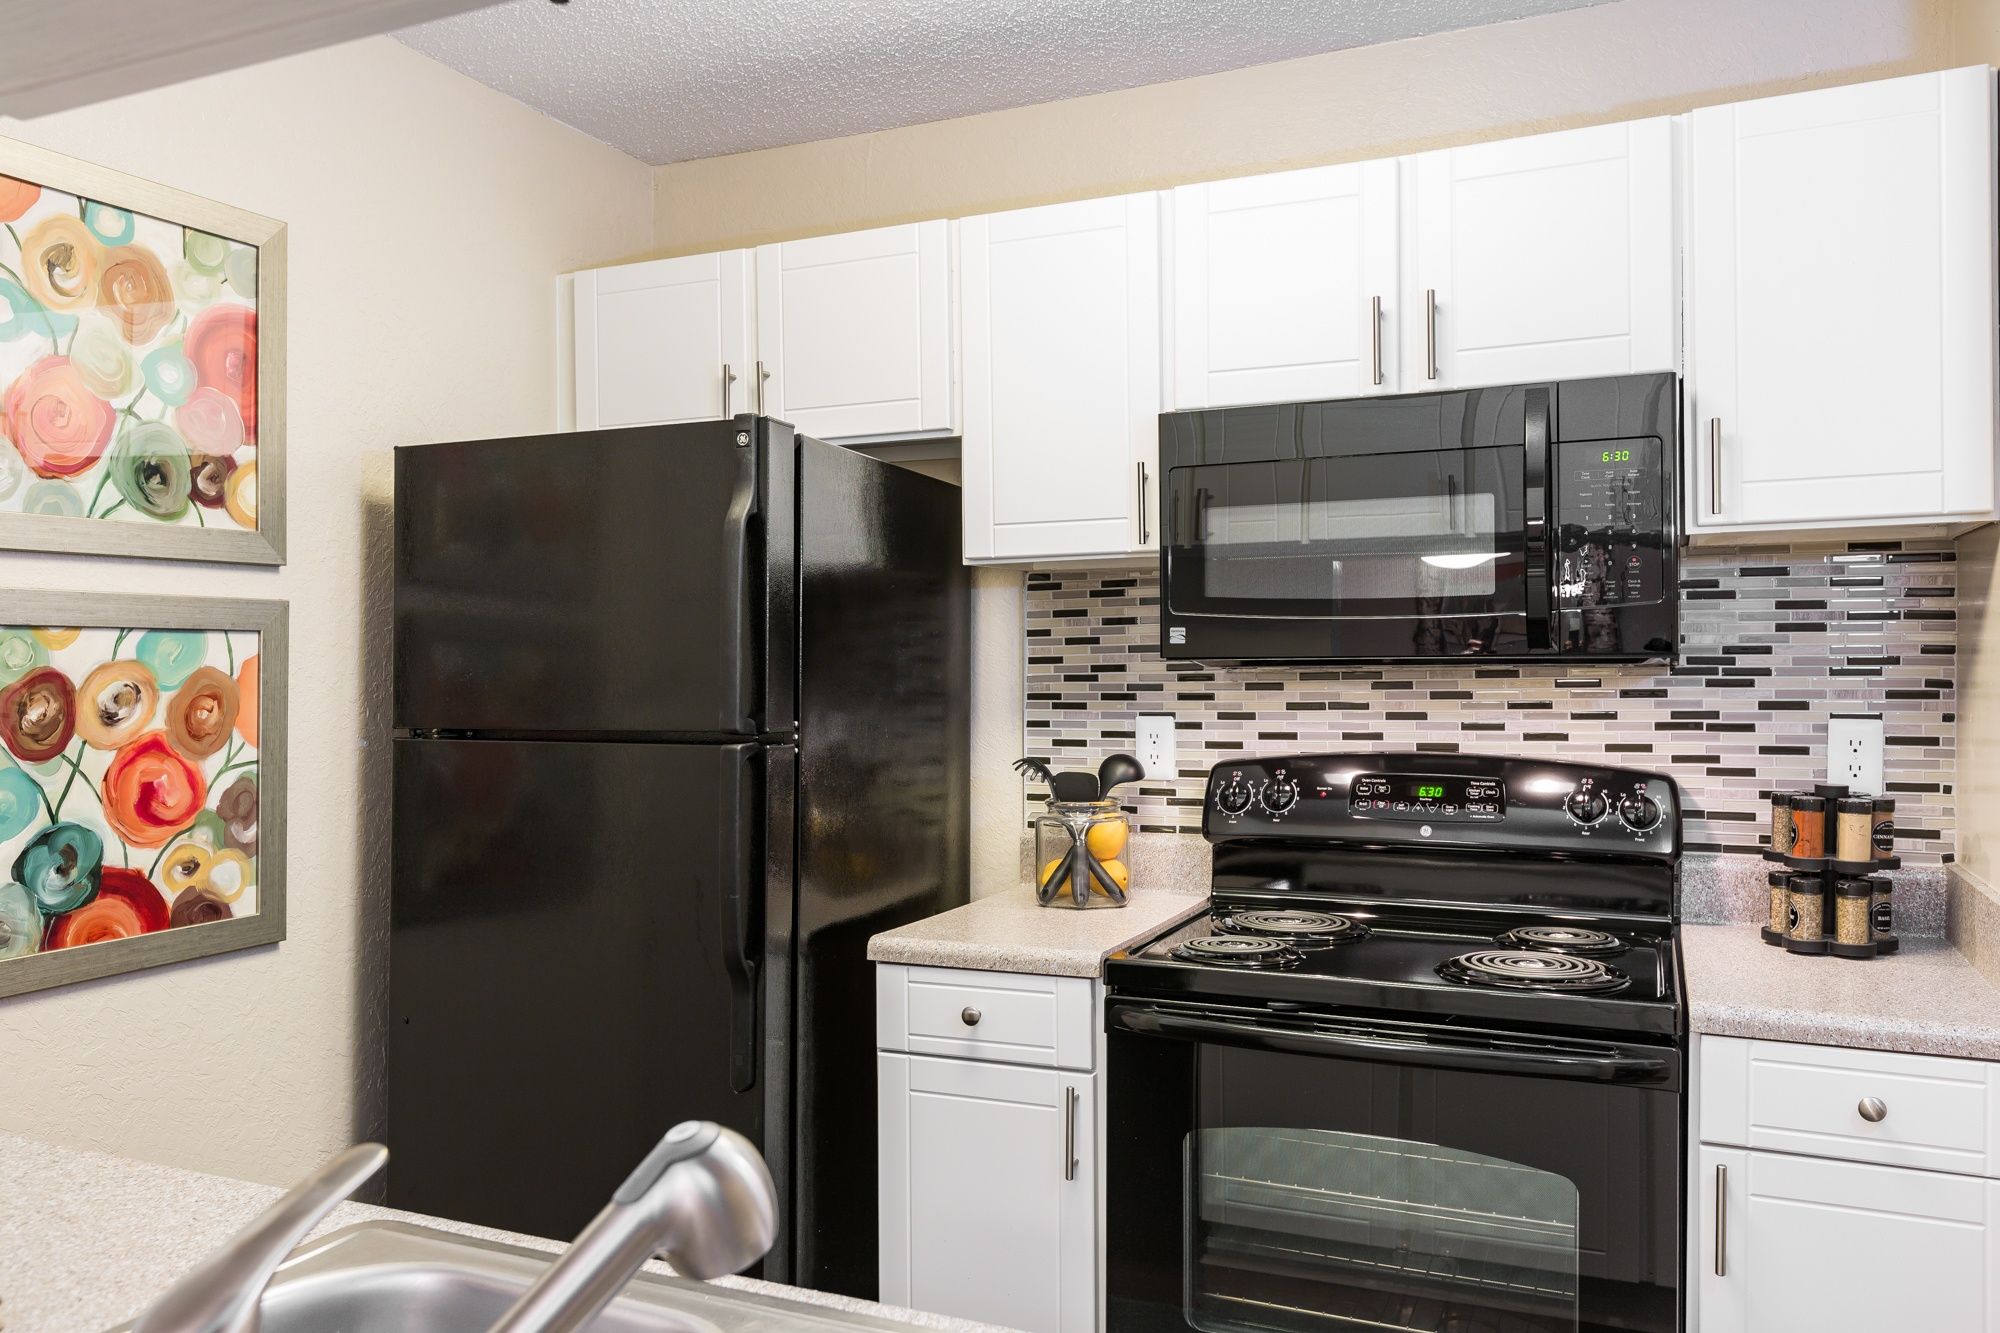 Kitchen Cabinets Charlotte Nc South Matthews Nc Apartments For Rent Near Charlotte Paces Pointe